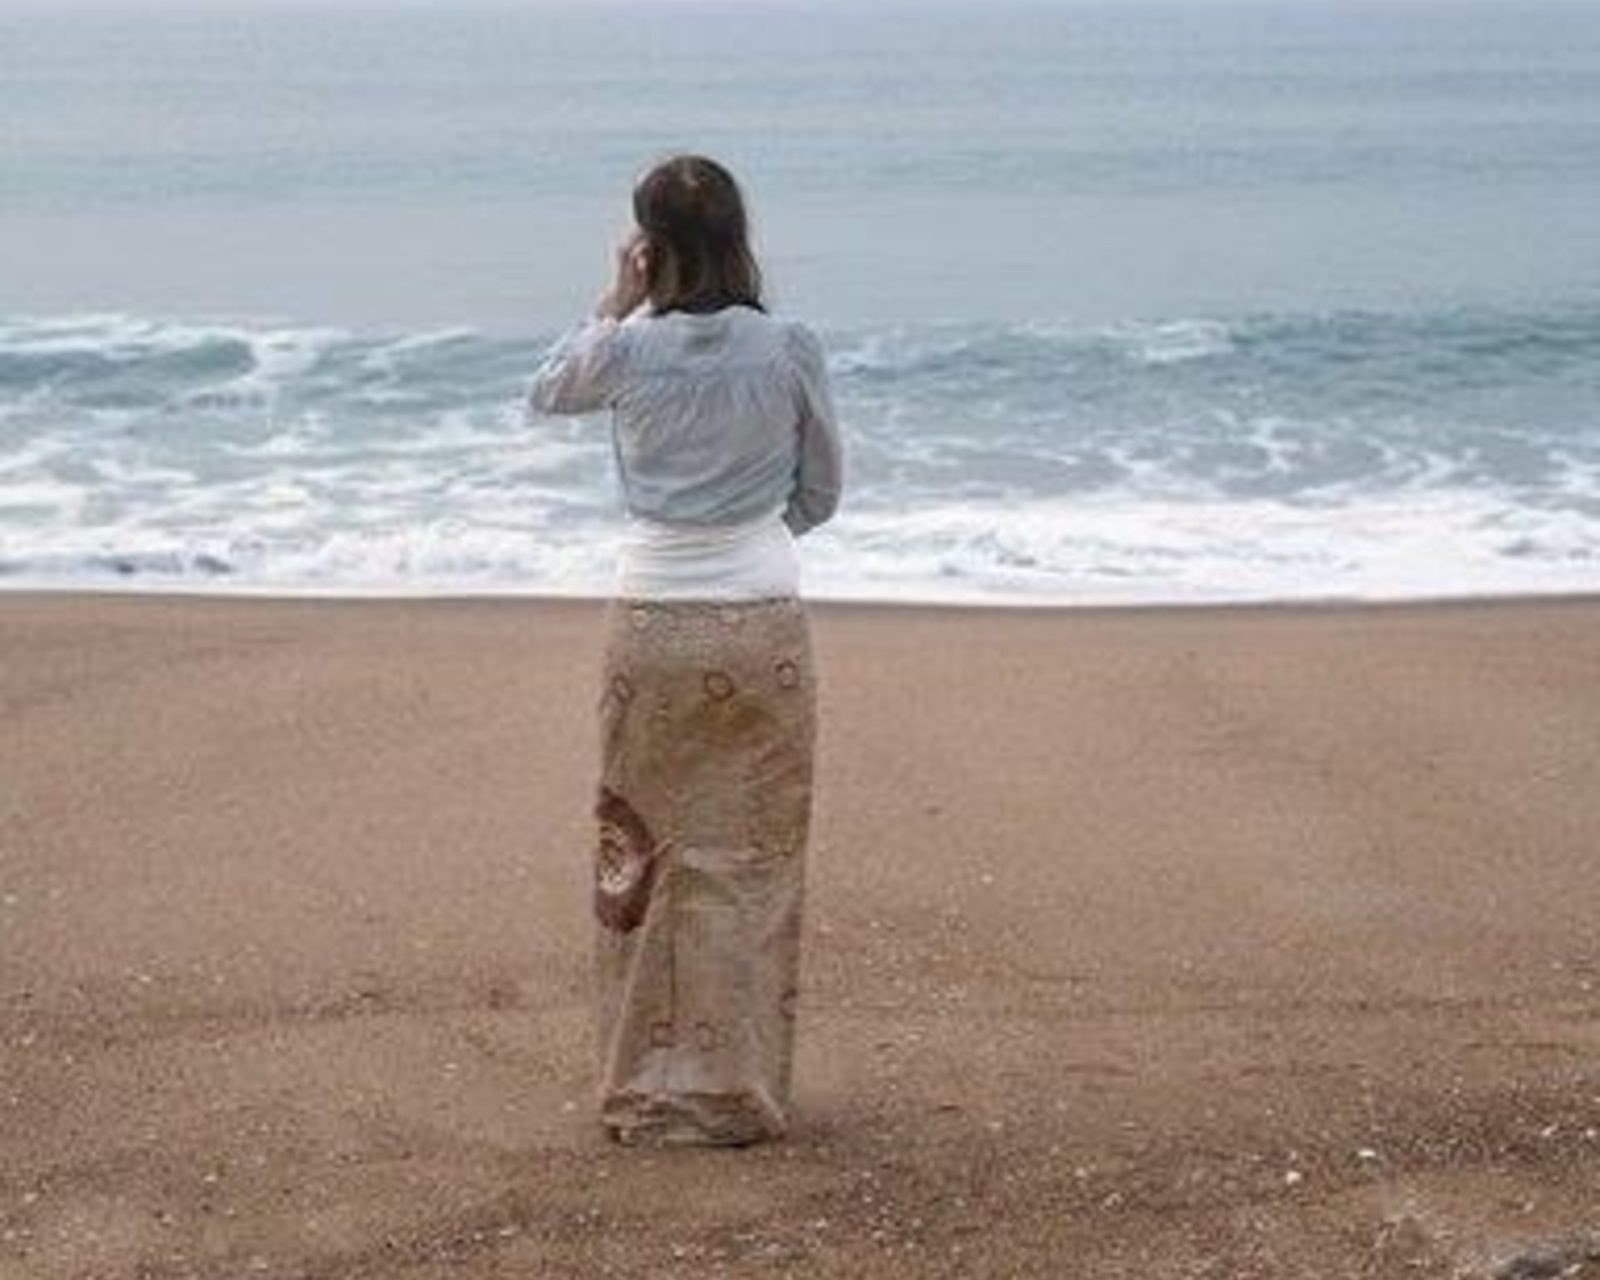 Strange photos that will make you look twice